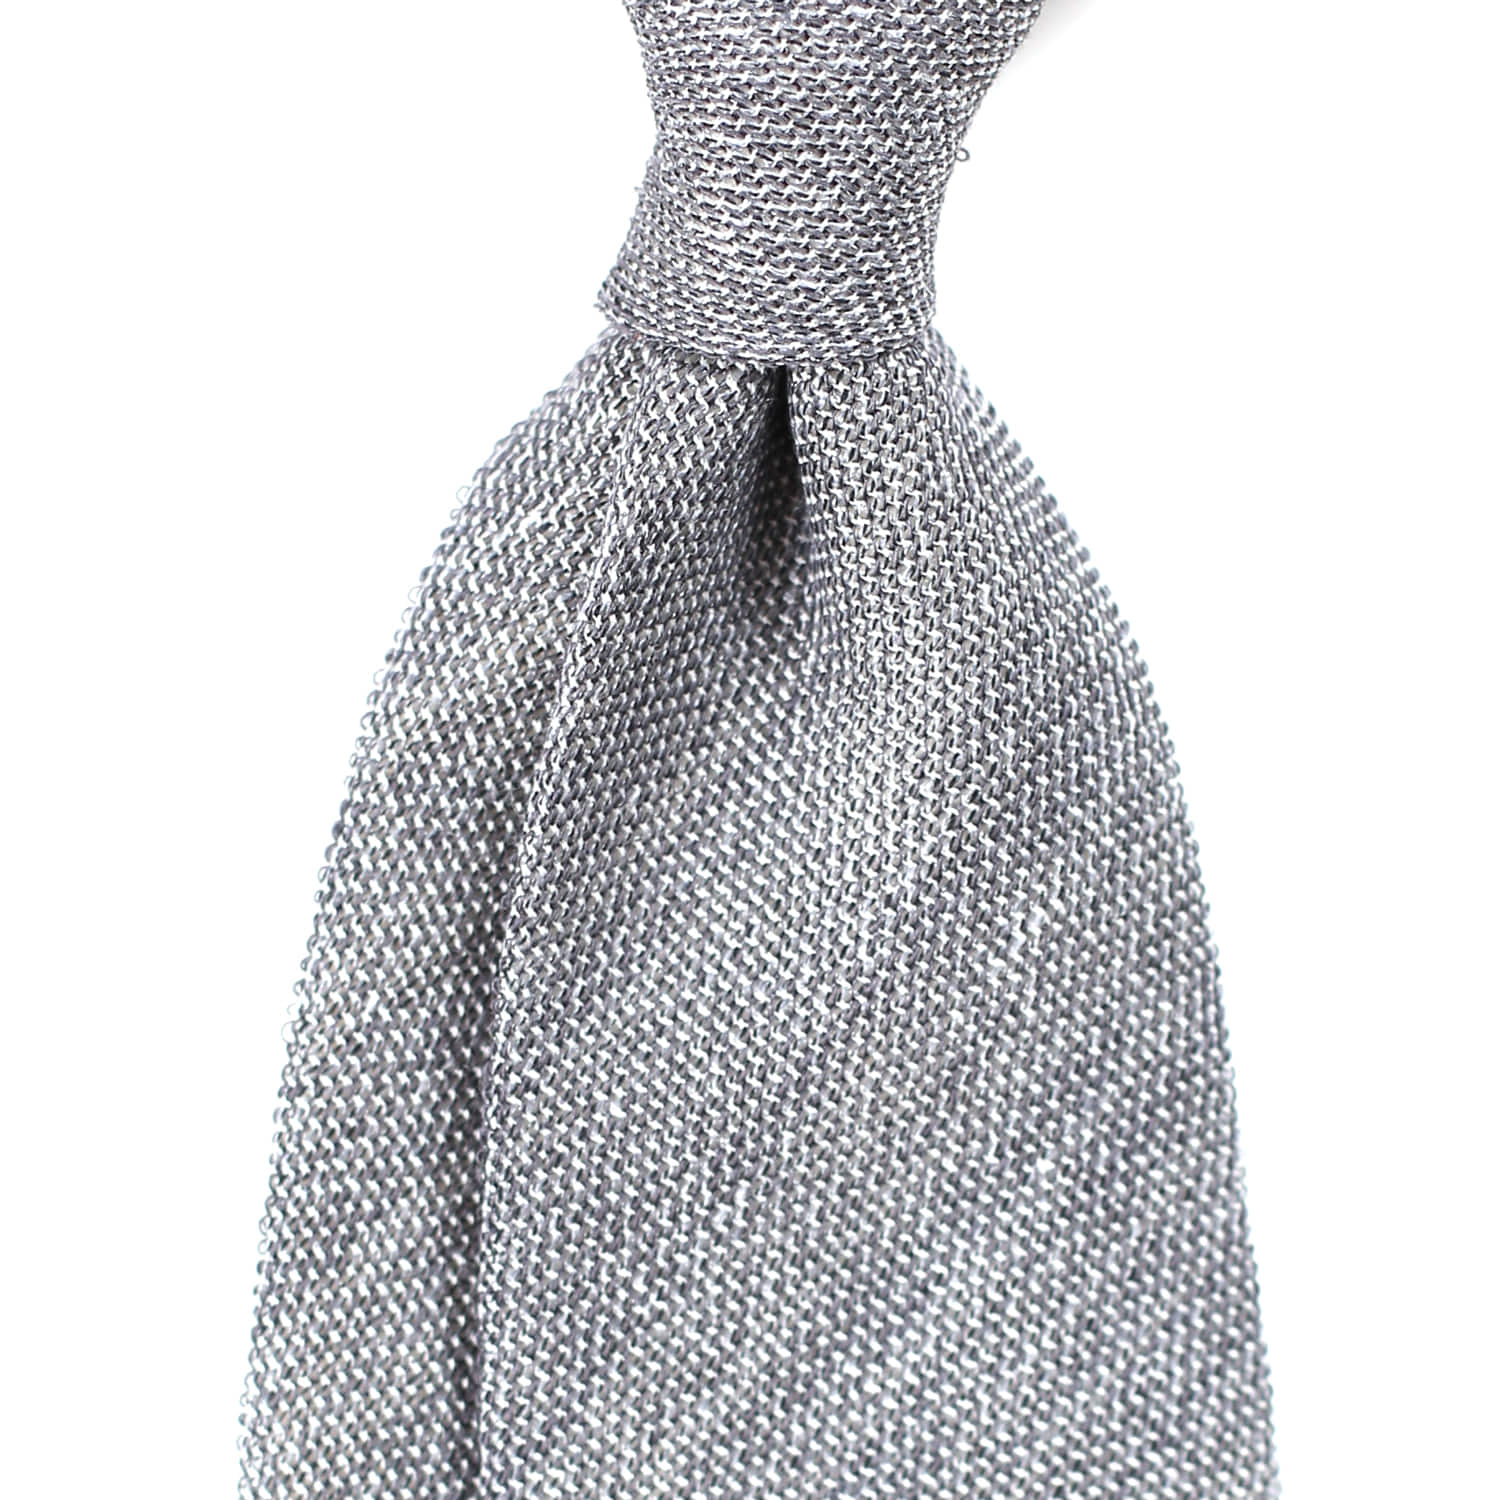 [BASIC] Gray Meshed Texture NecktieFrui1+1이벤트